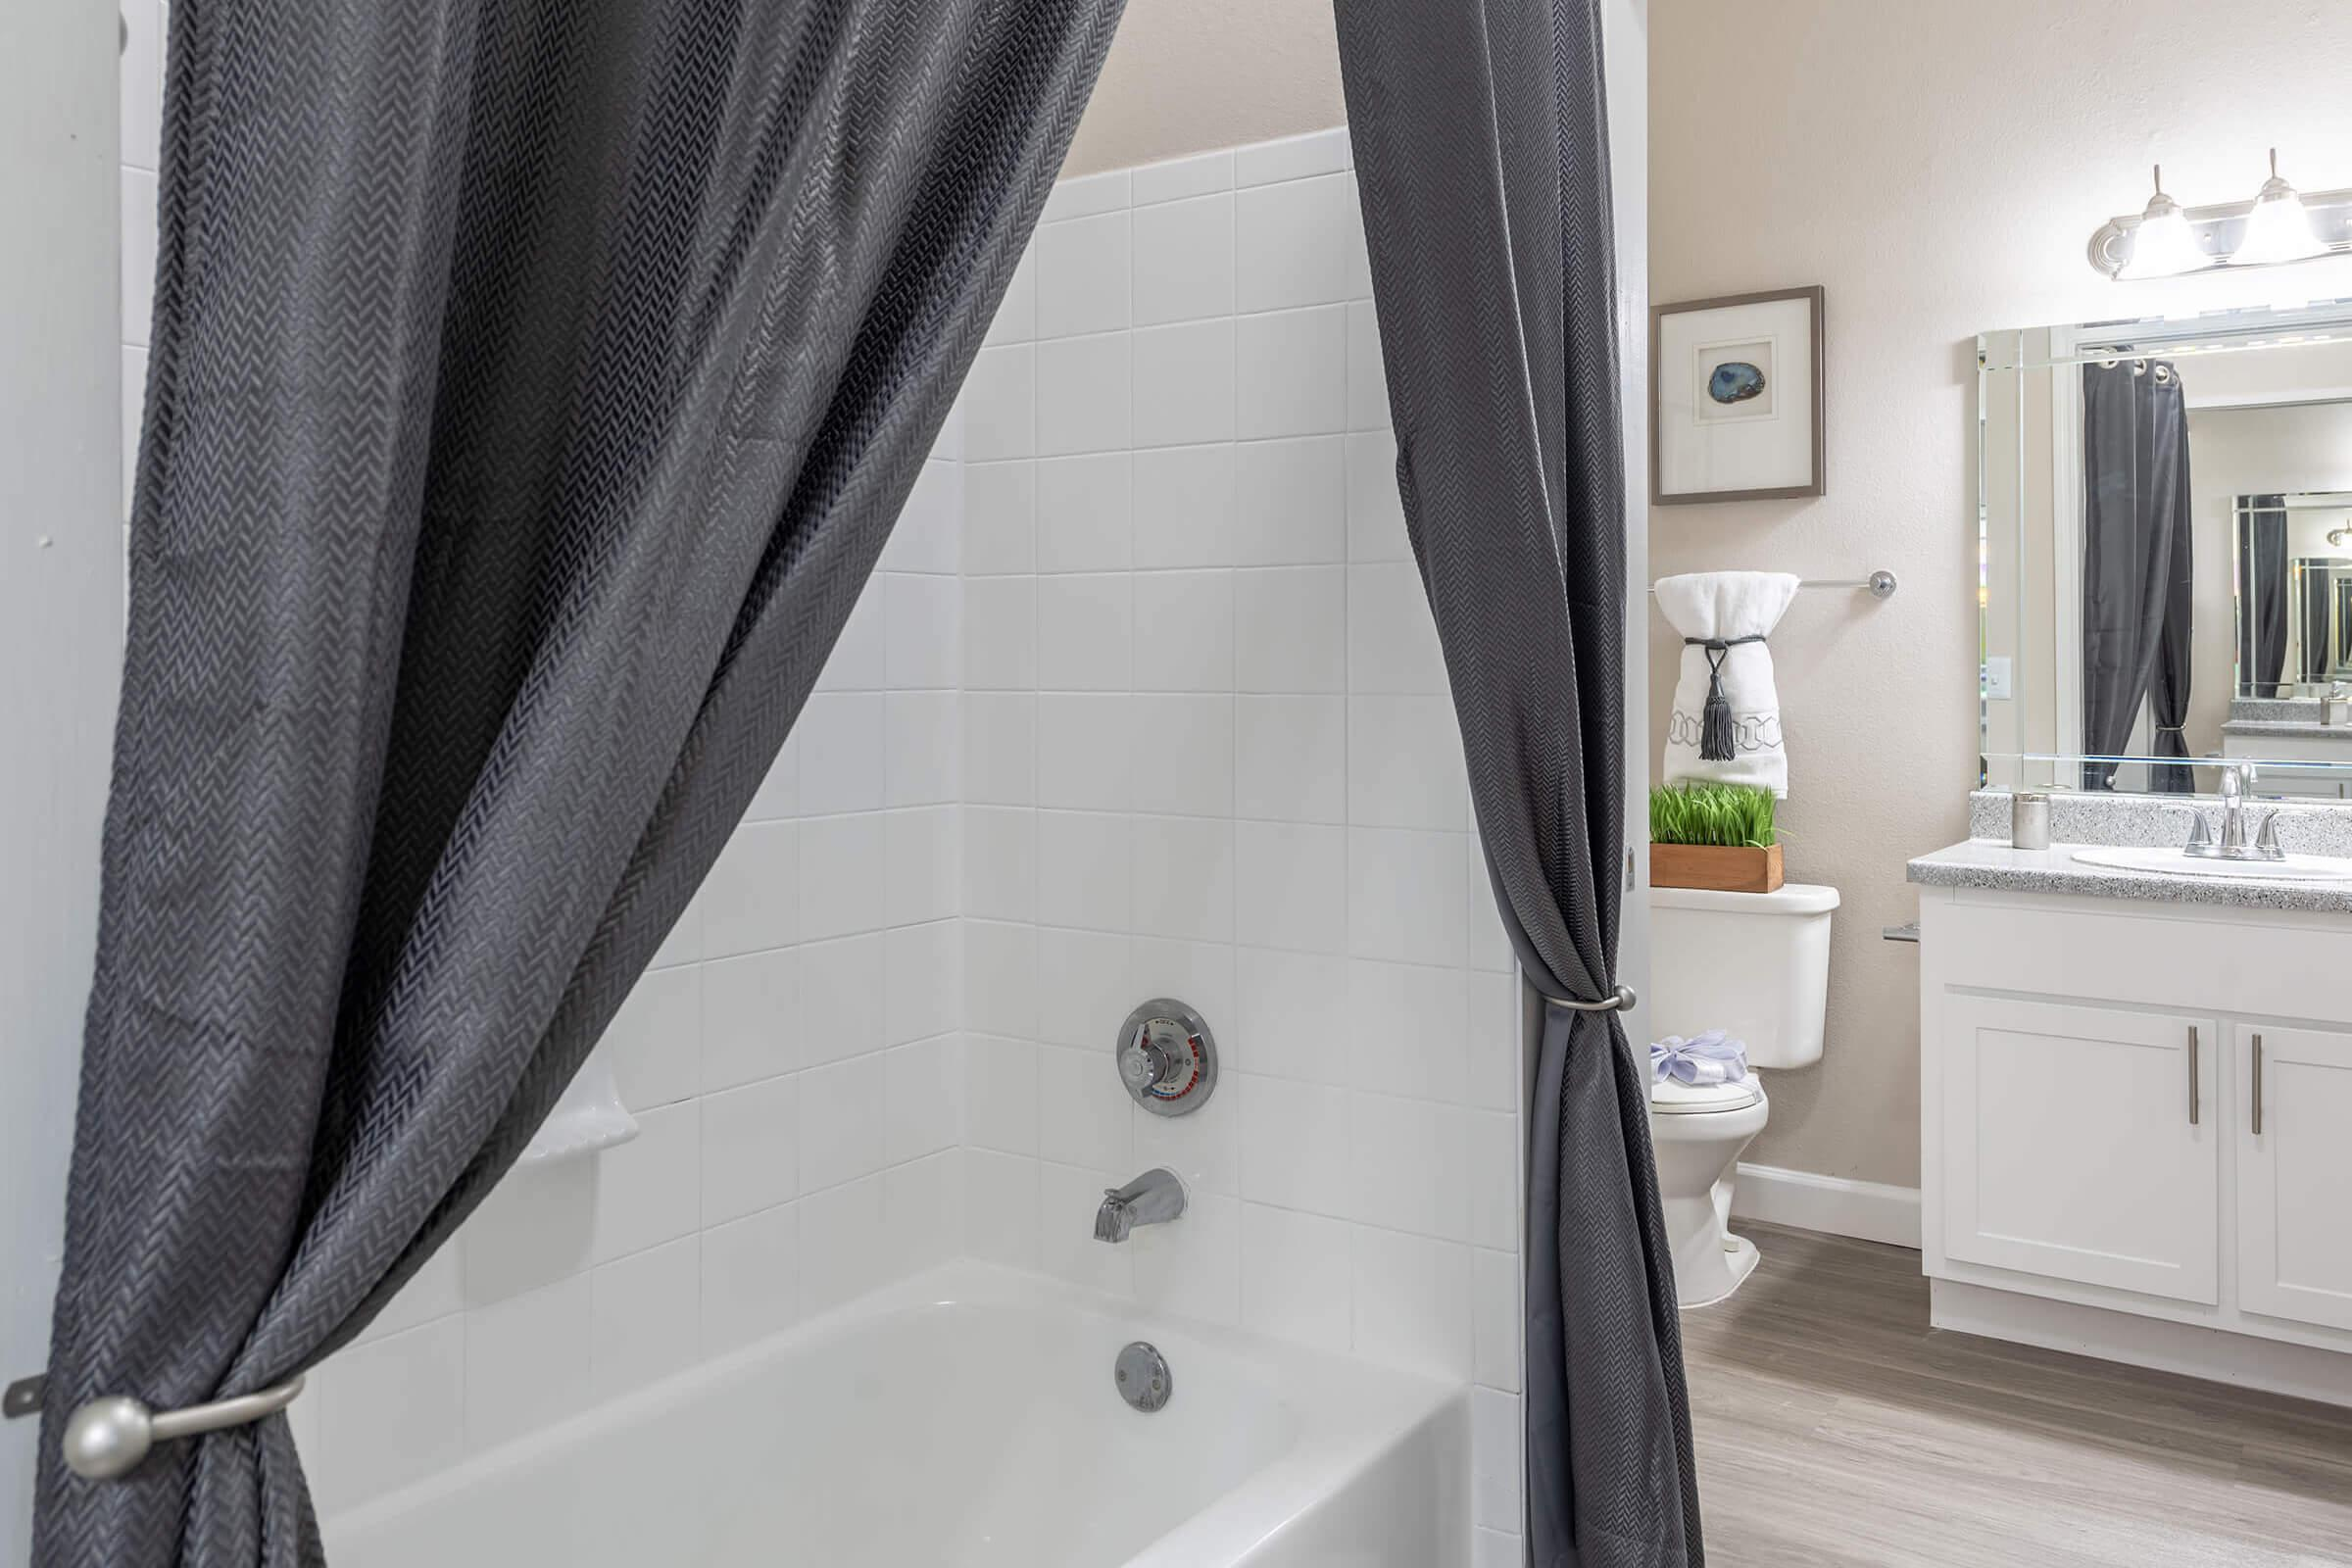 a shower curtain with a white tub sitting next to a sink